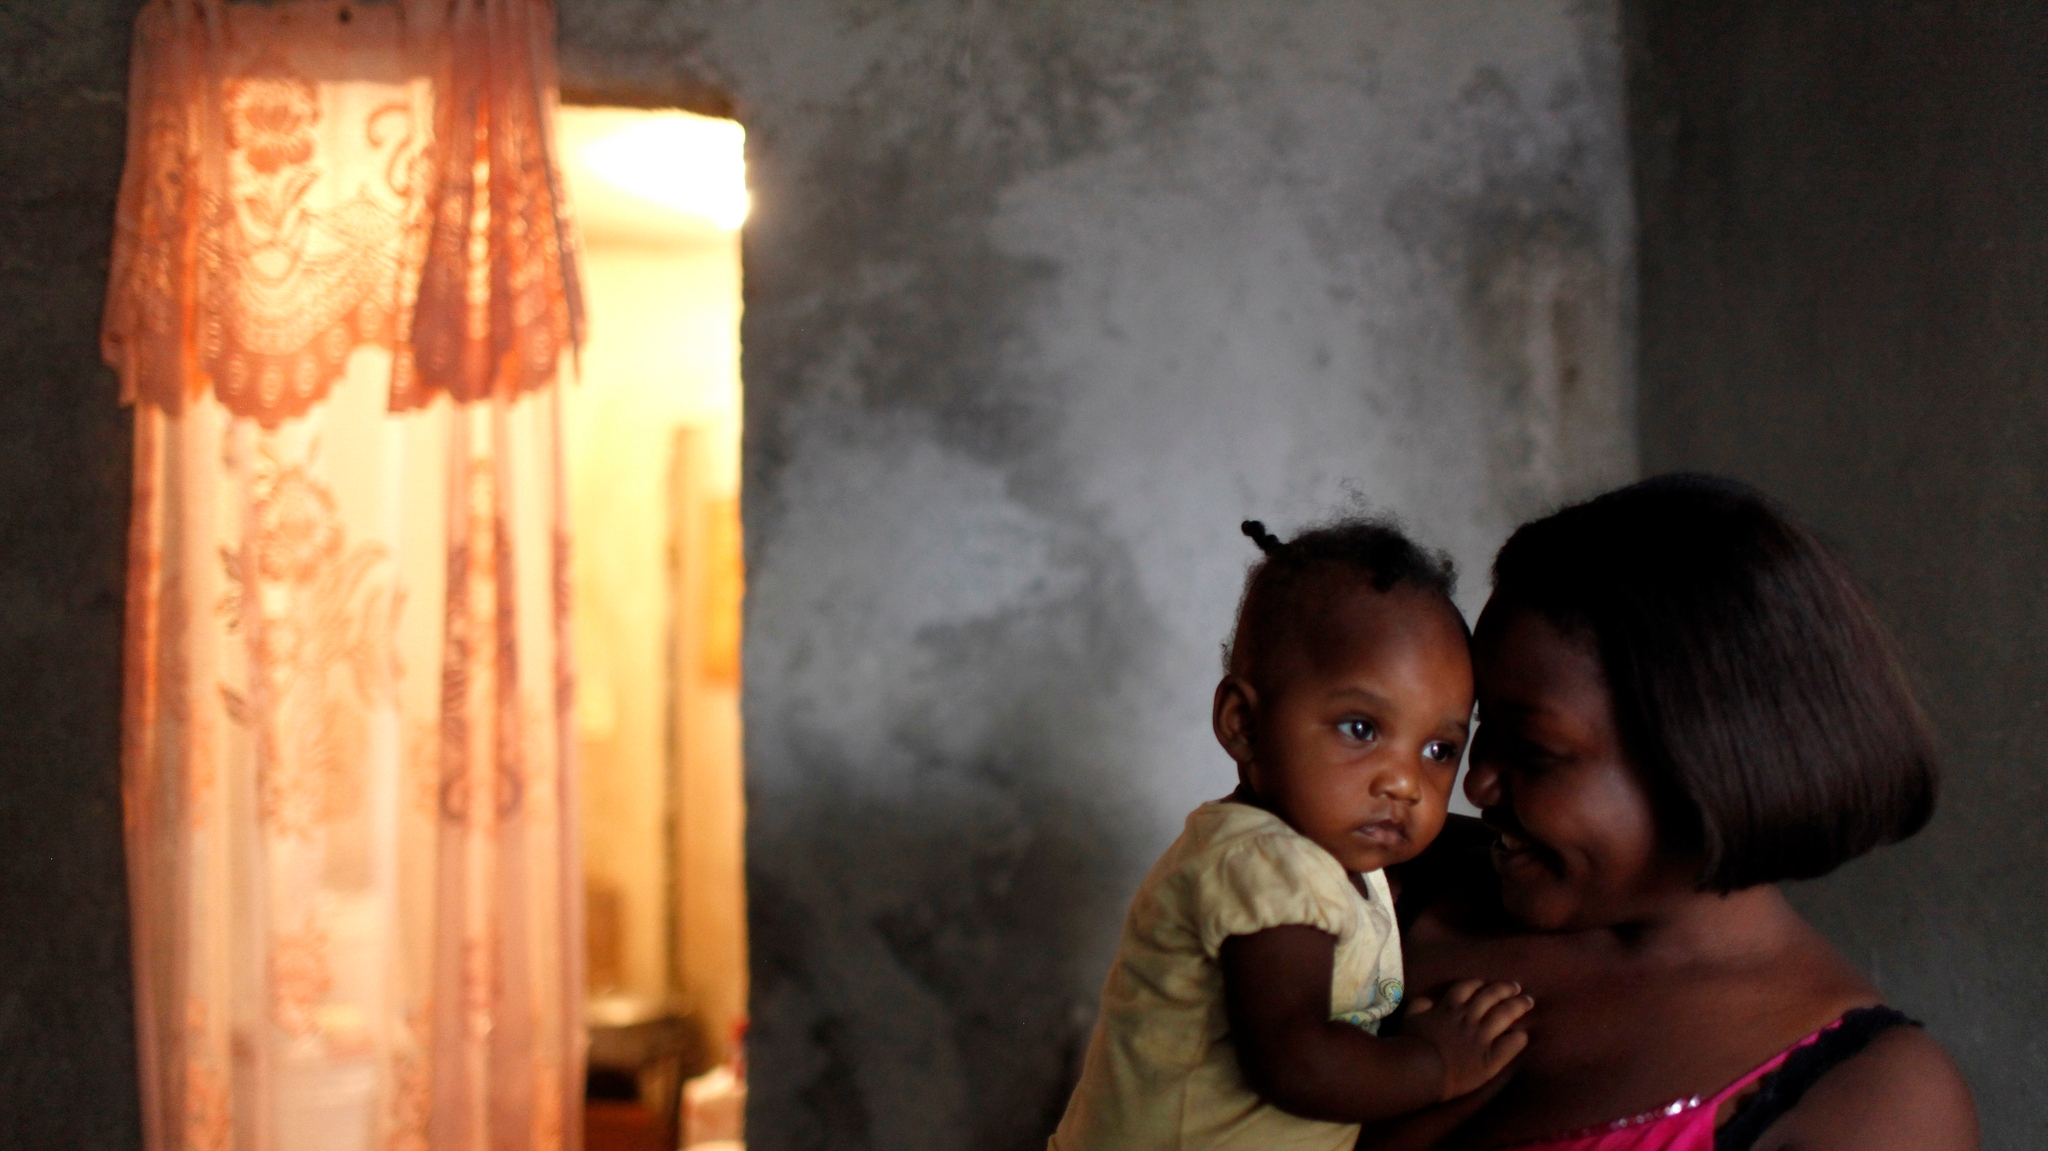 Haiti: Investing in people to fight poverty